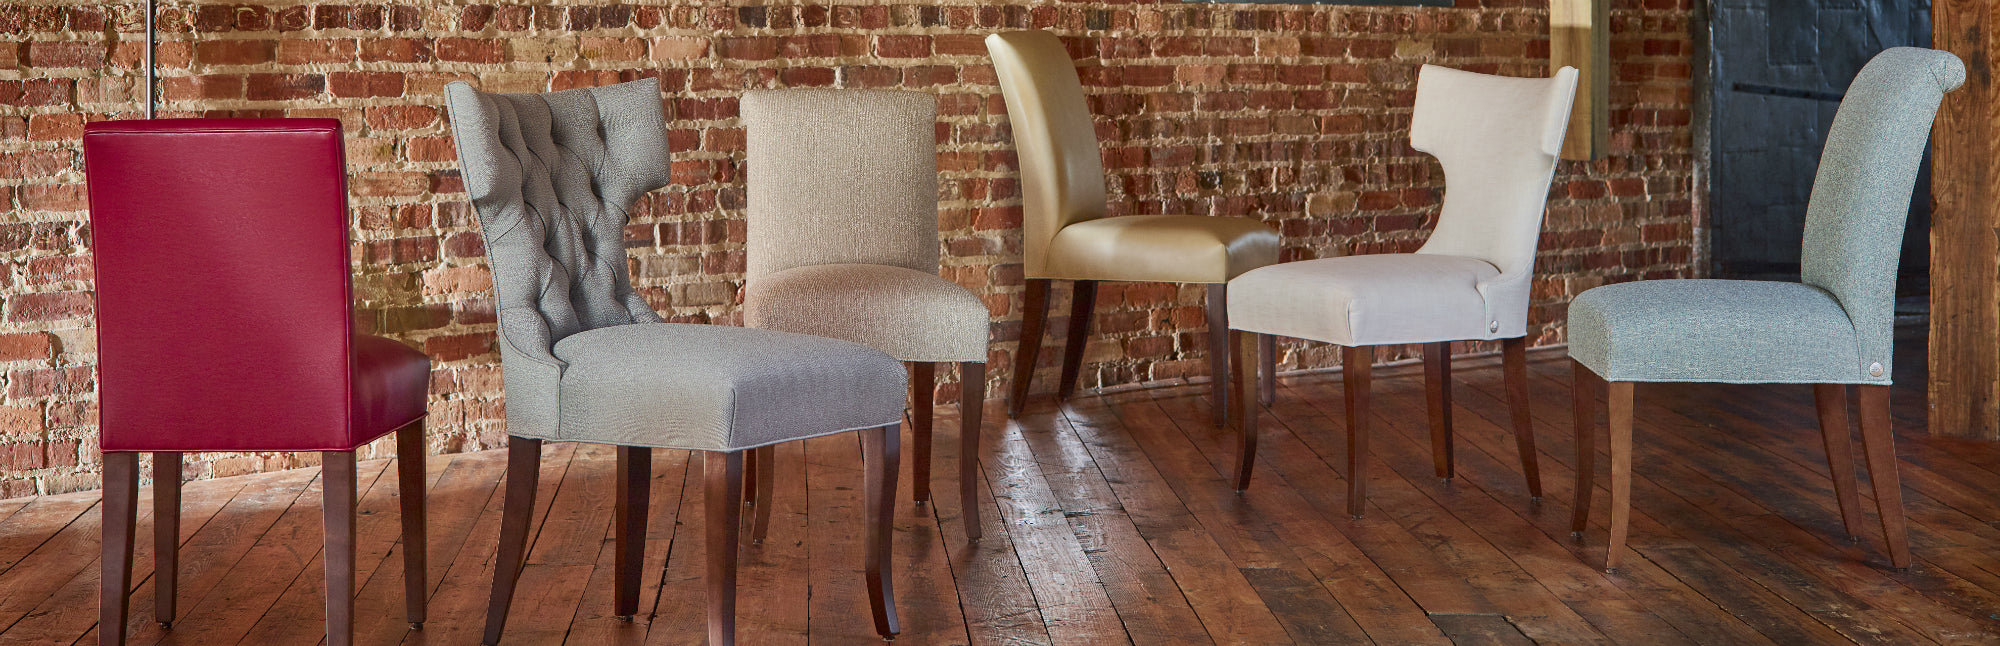 The Cudo Dining Chair collection, lined up against a brick wall.